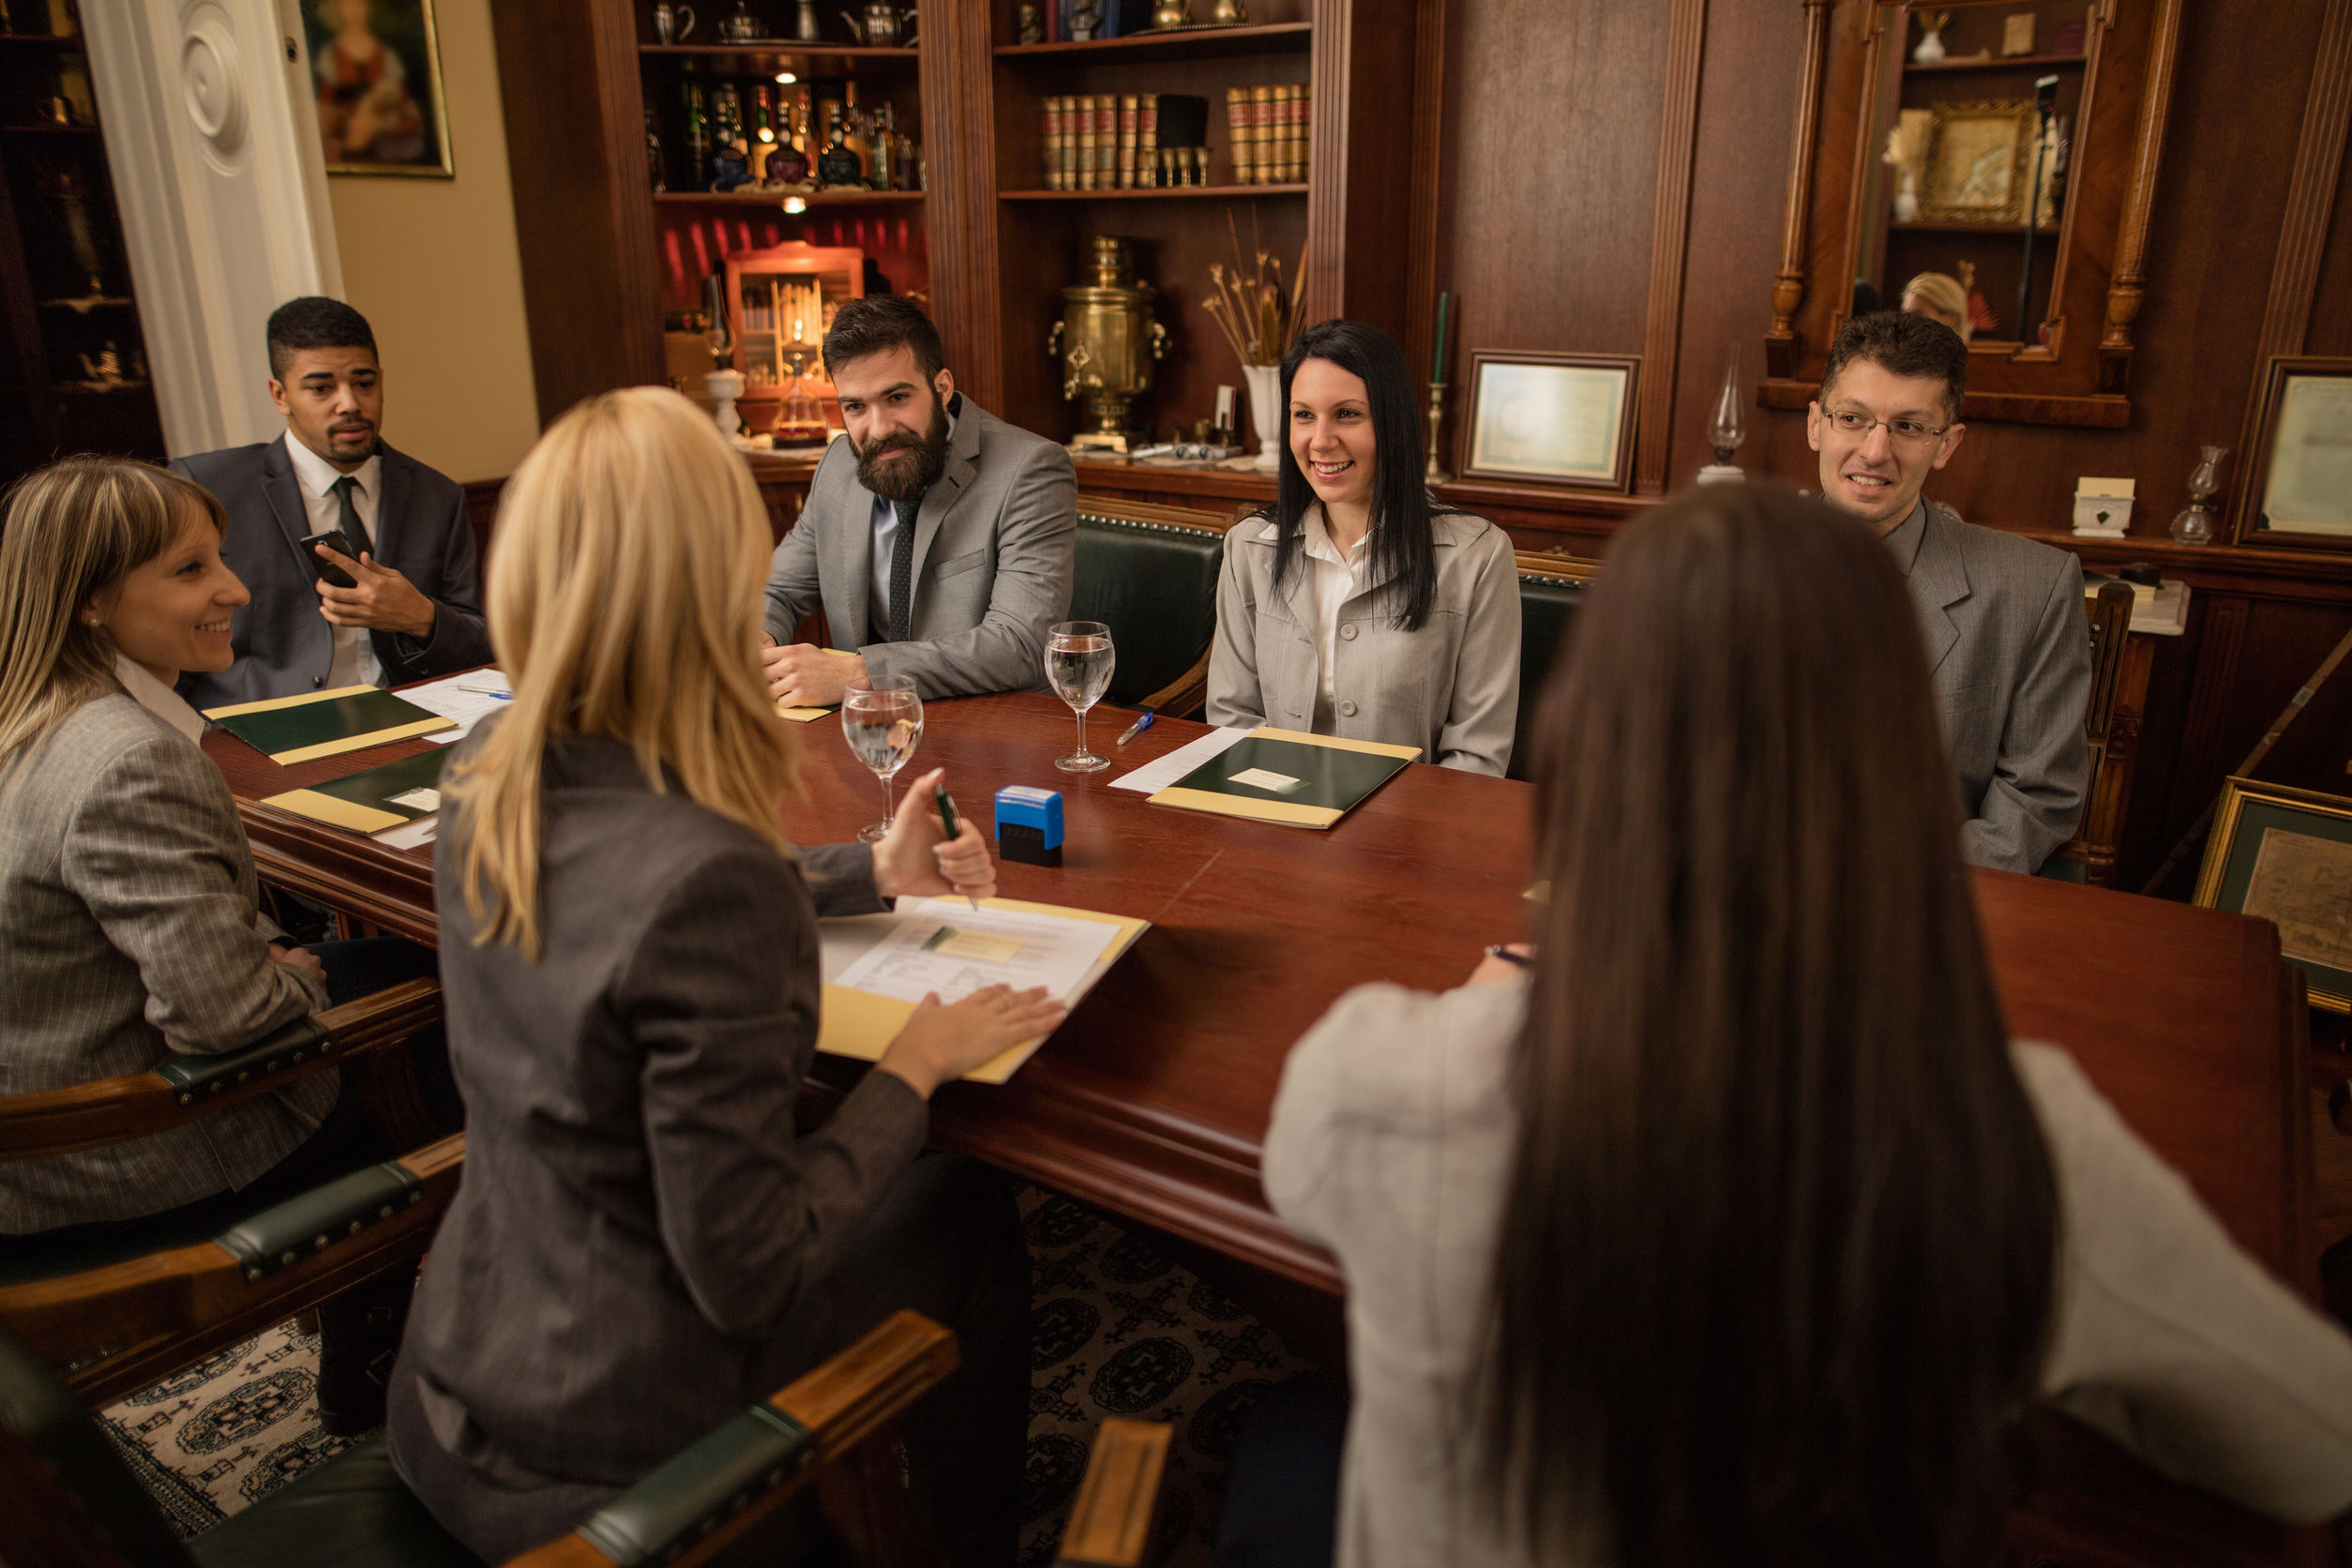 group of business people or lawyers – meeting in an office